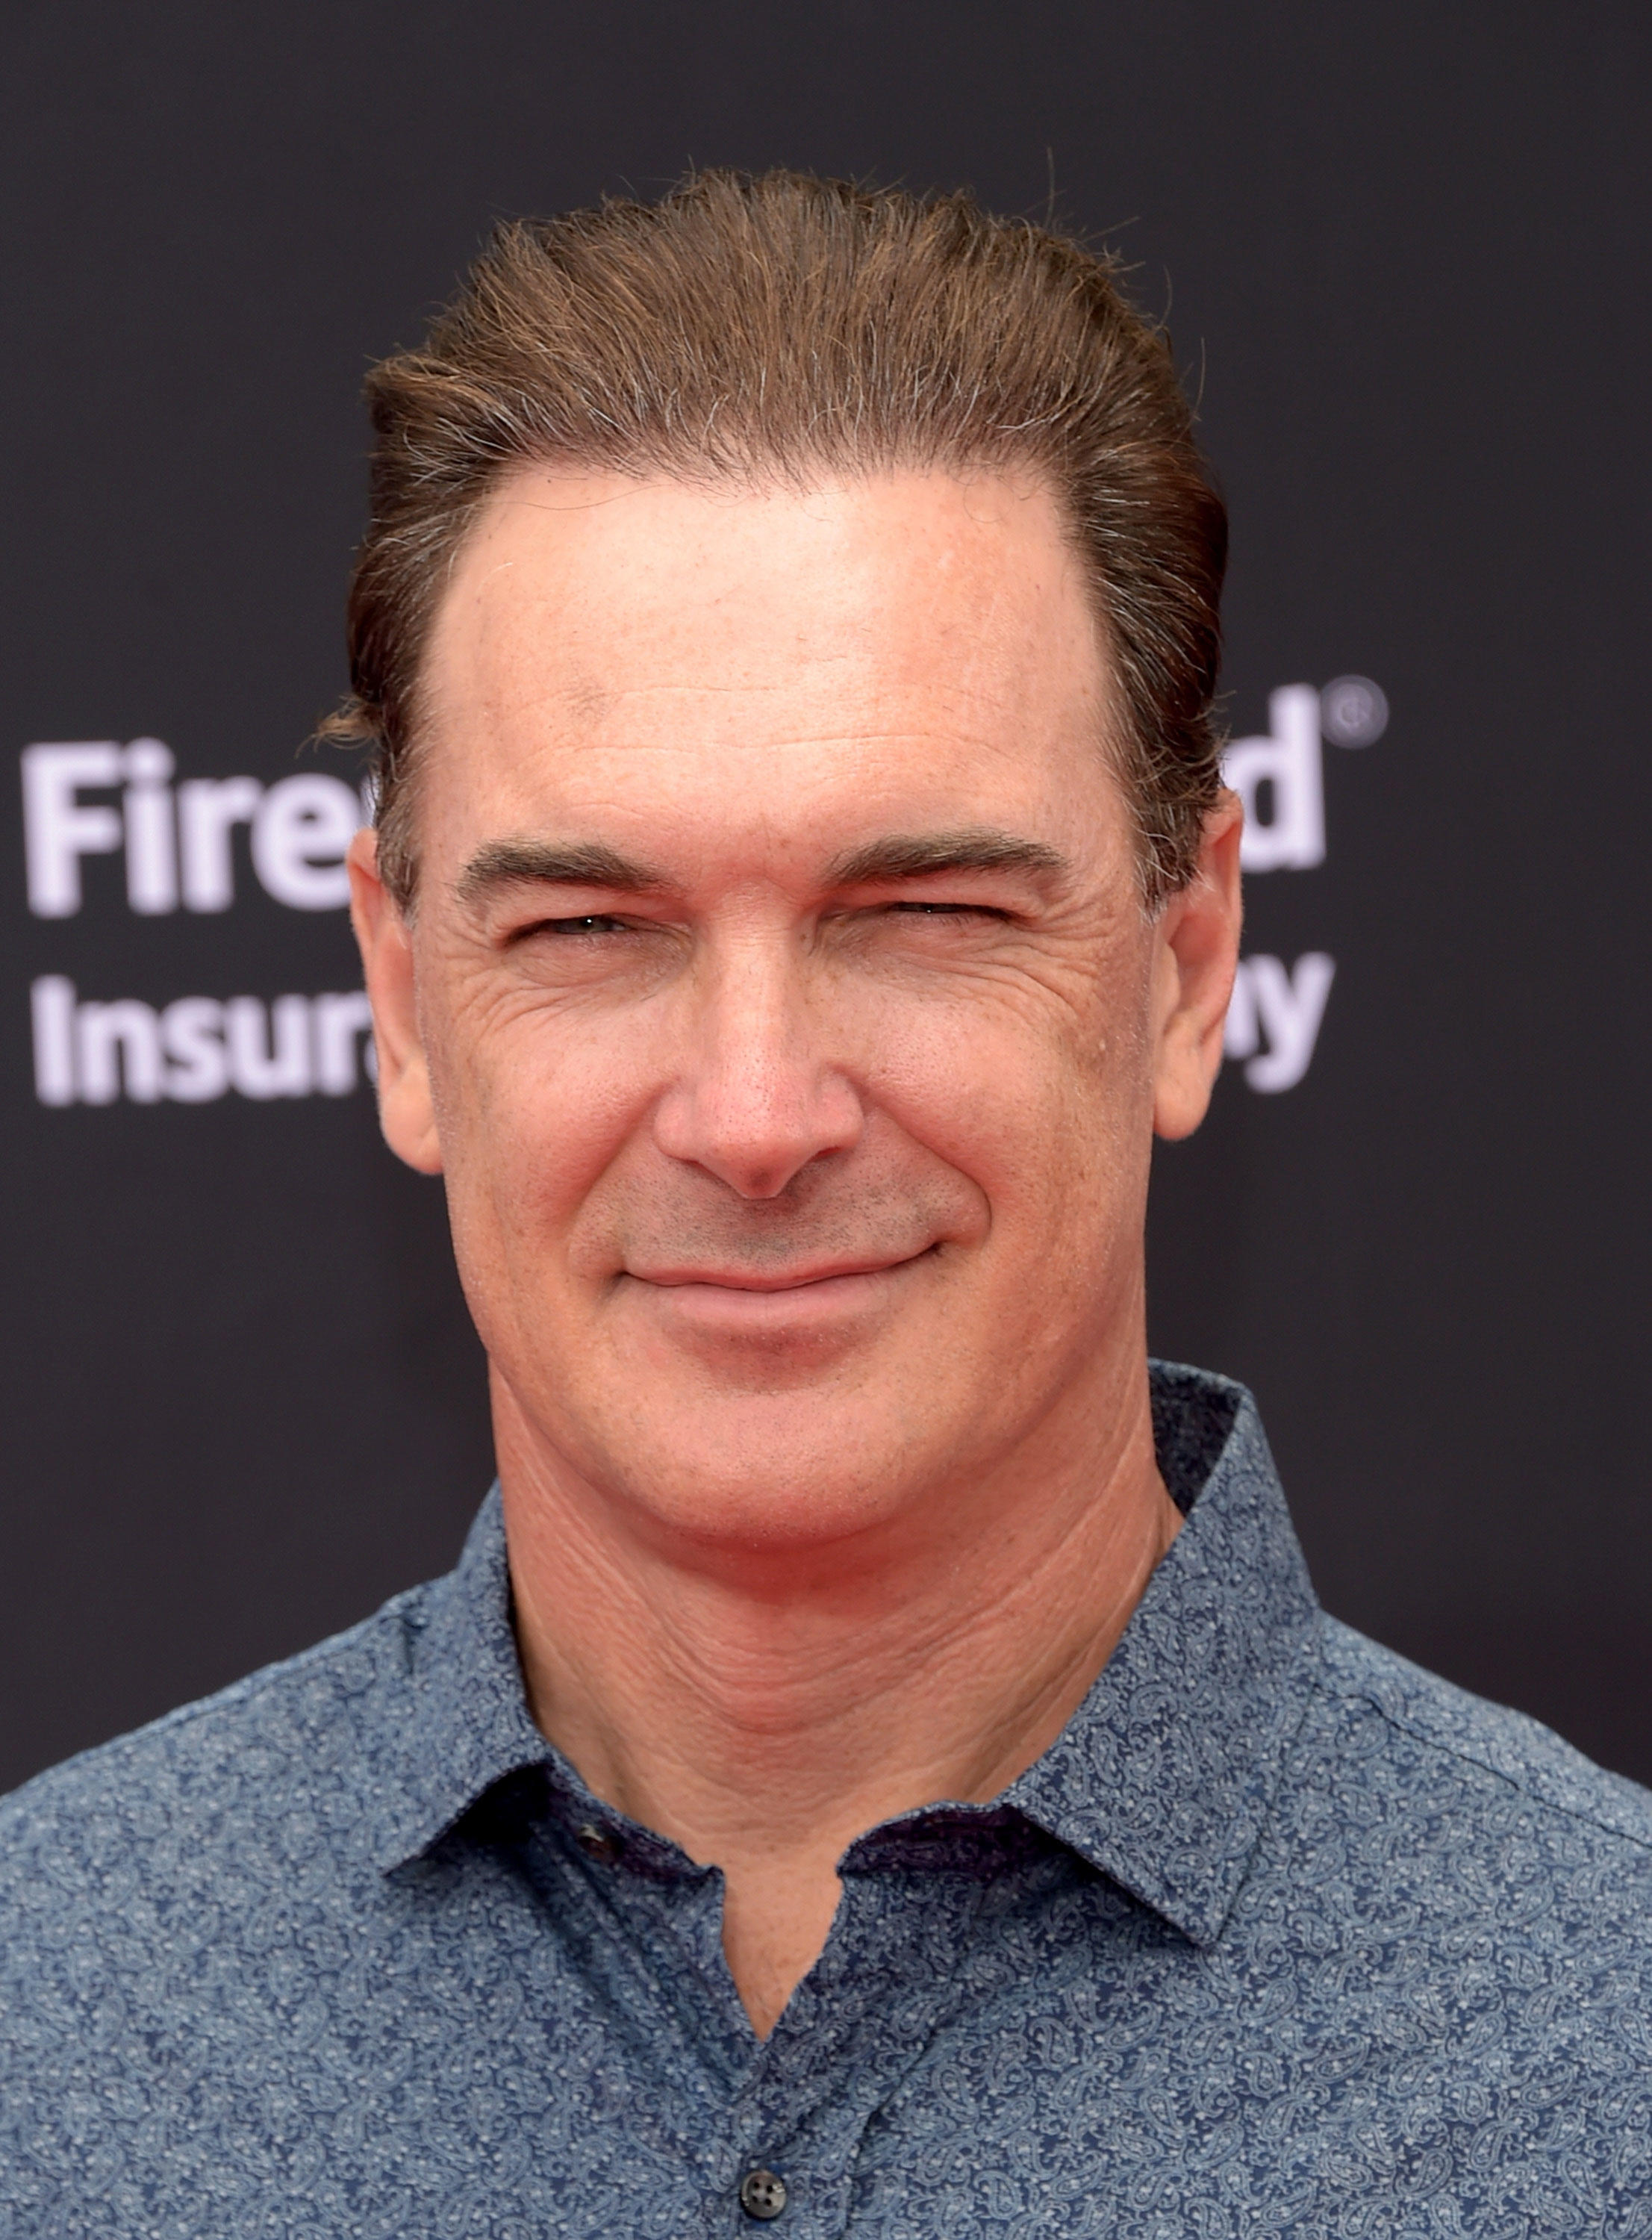 is patrick warburton bald